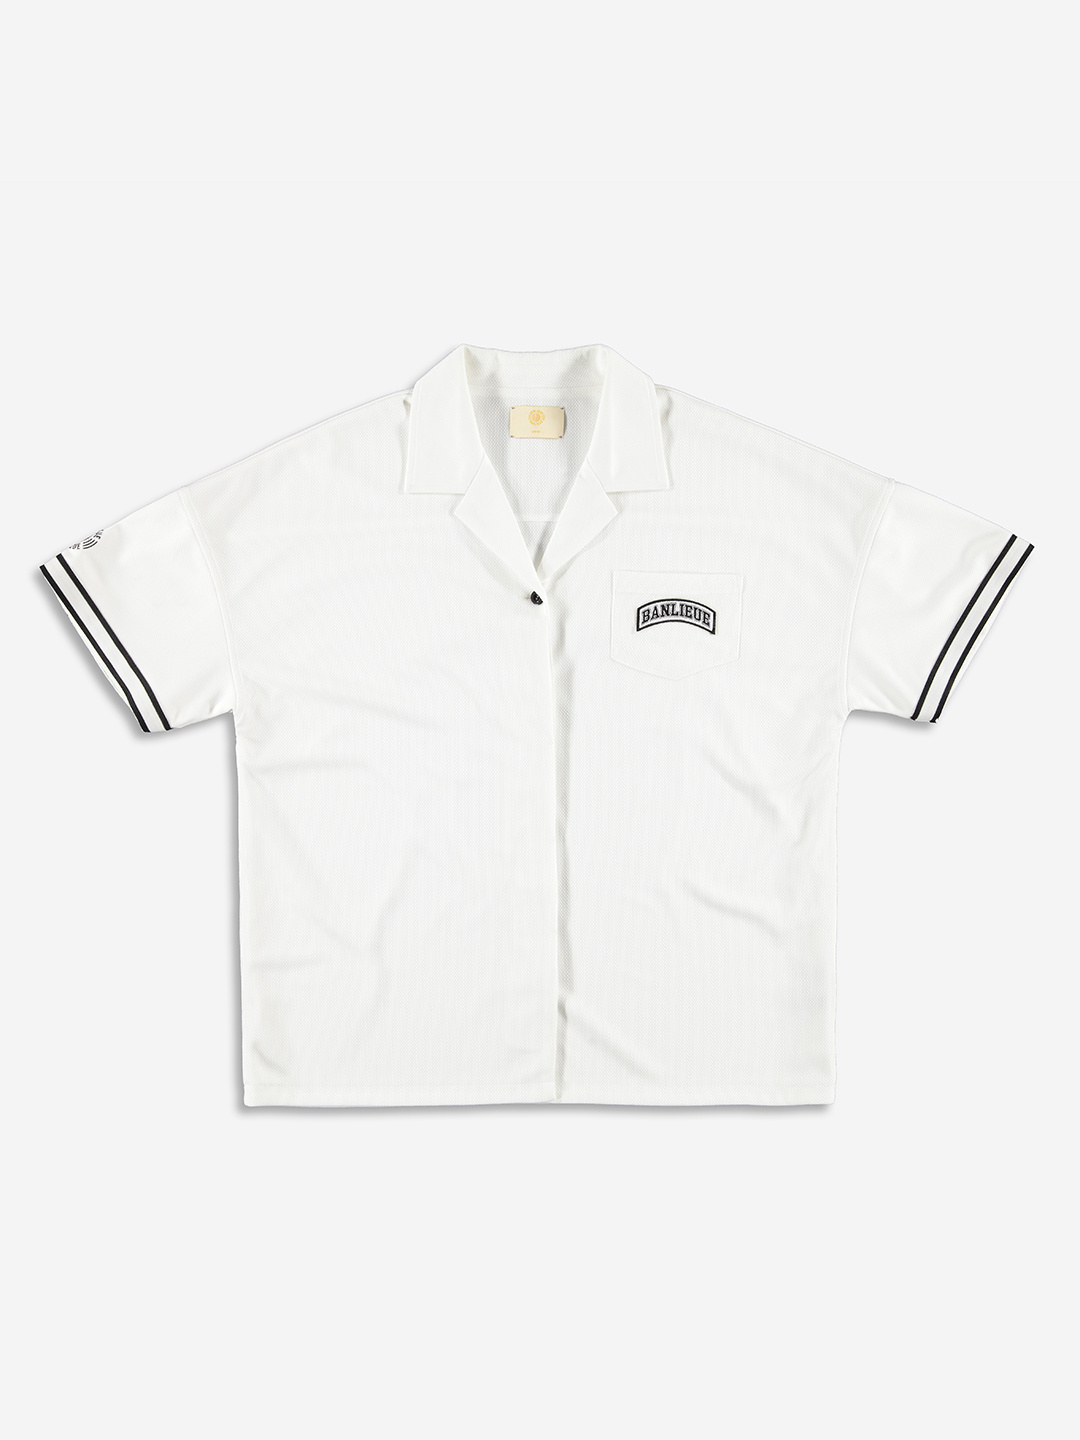 BOWLING SHIRT CREAM BLANC